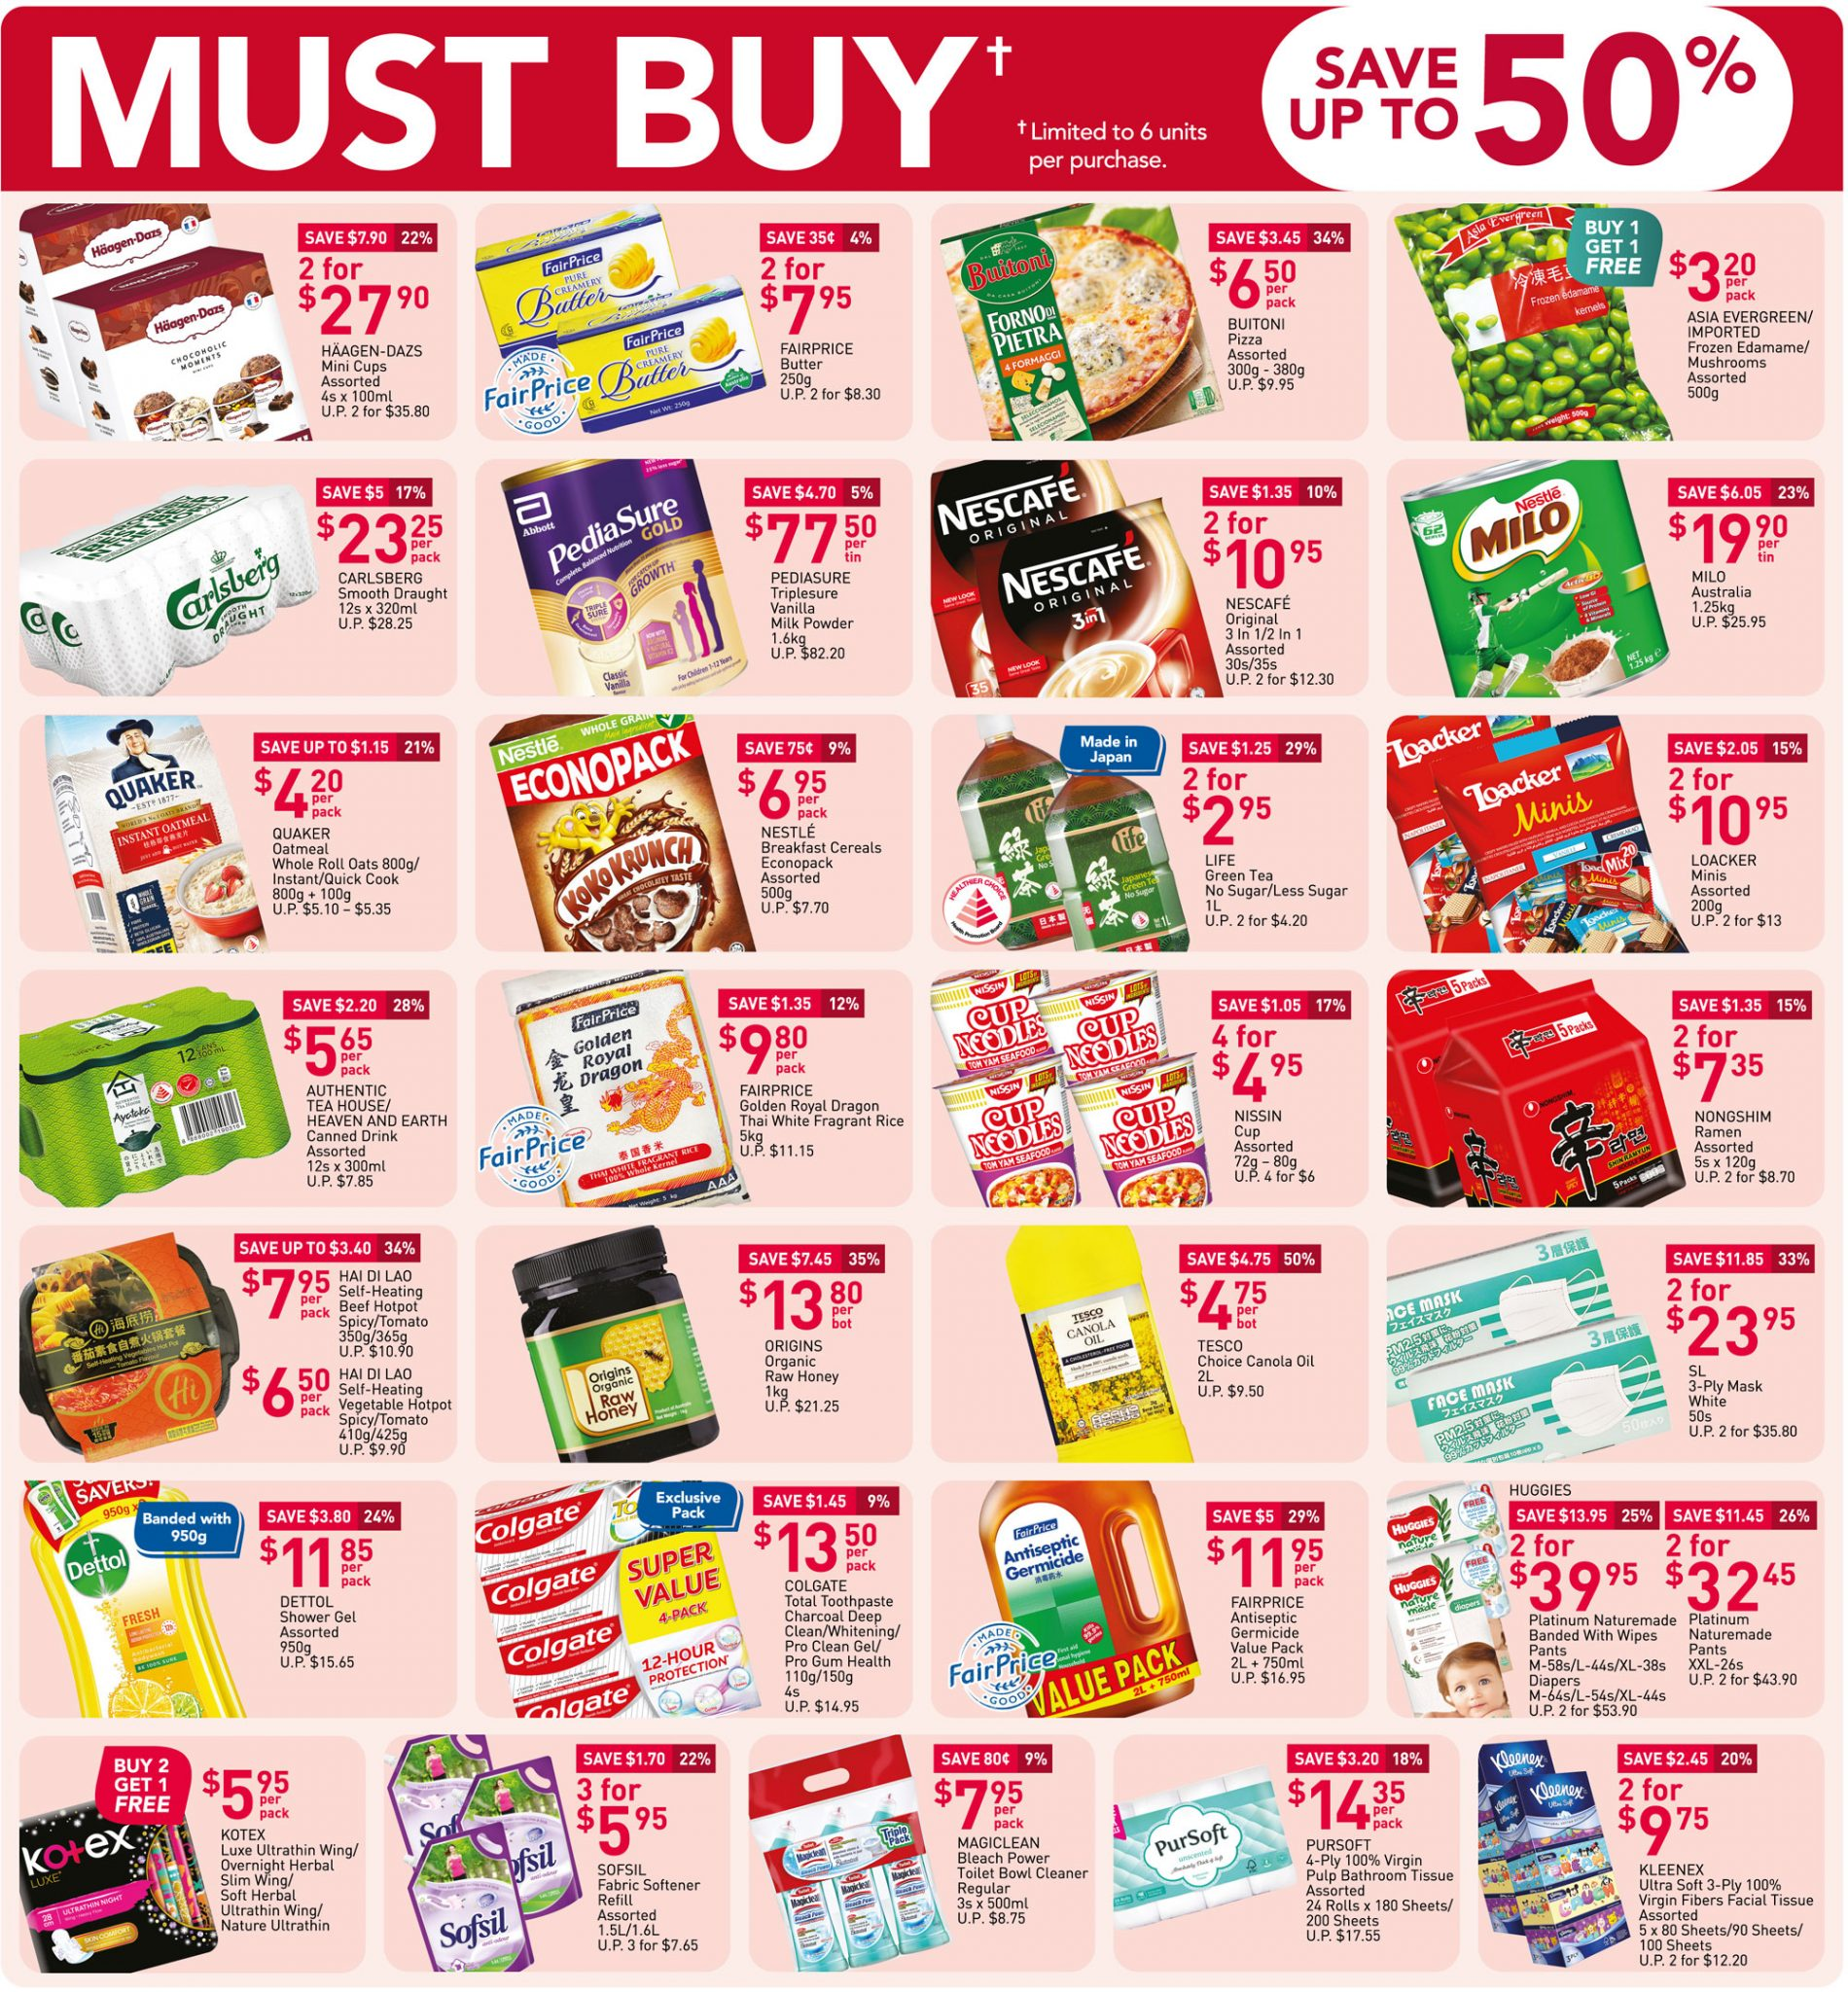 Must-buy items from now till 17 March 2021